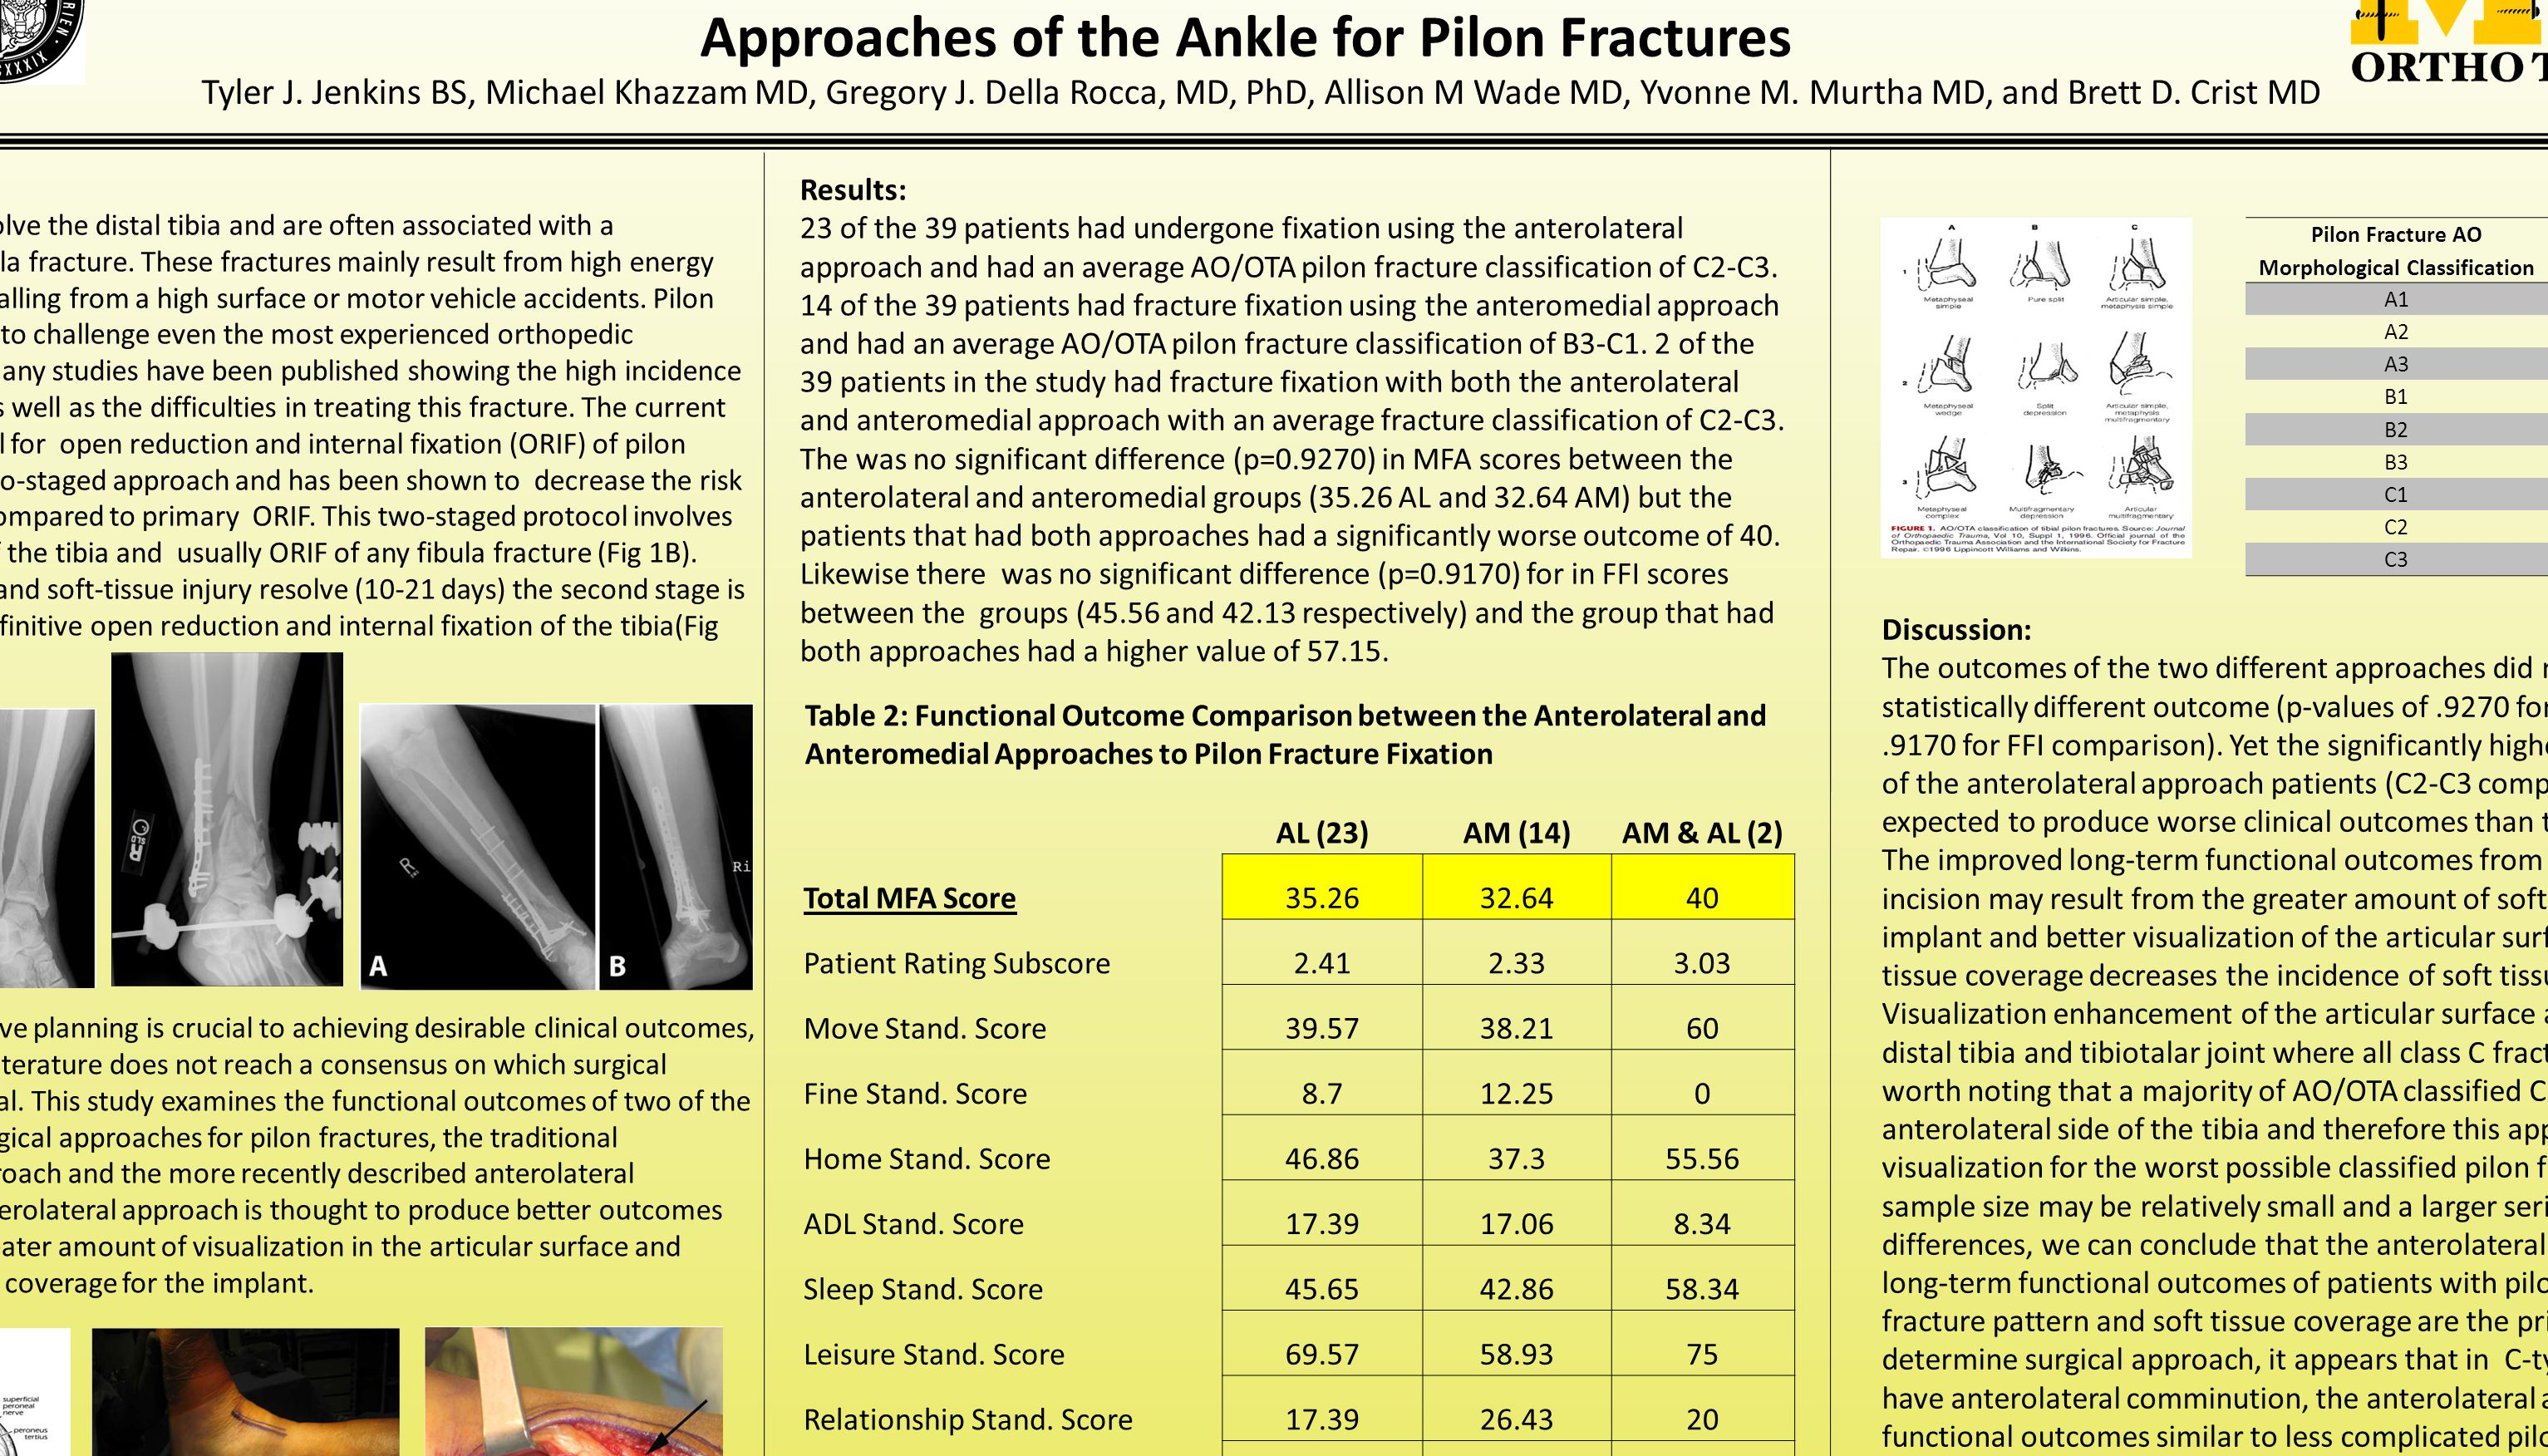 Functional Outcomes of Patients Undergoing Anterolateral versus Anteromedial Approaches of the Ankle for Pilon Fractures Tyler J.